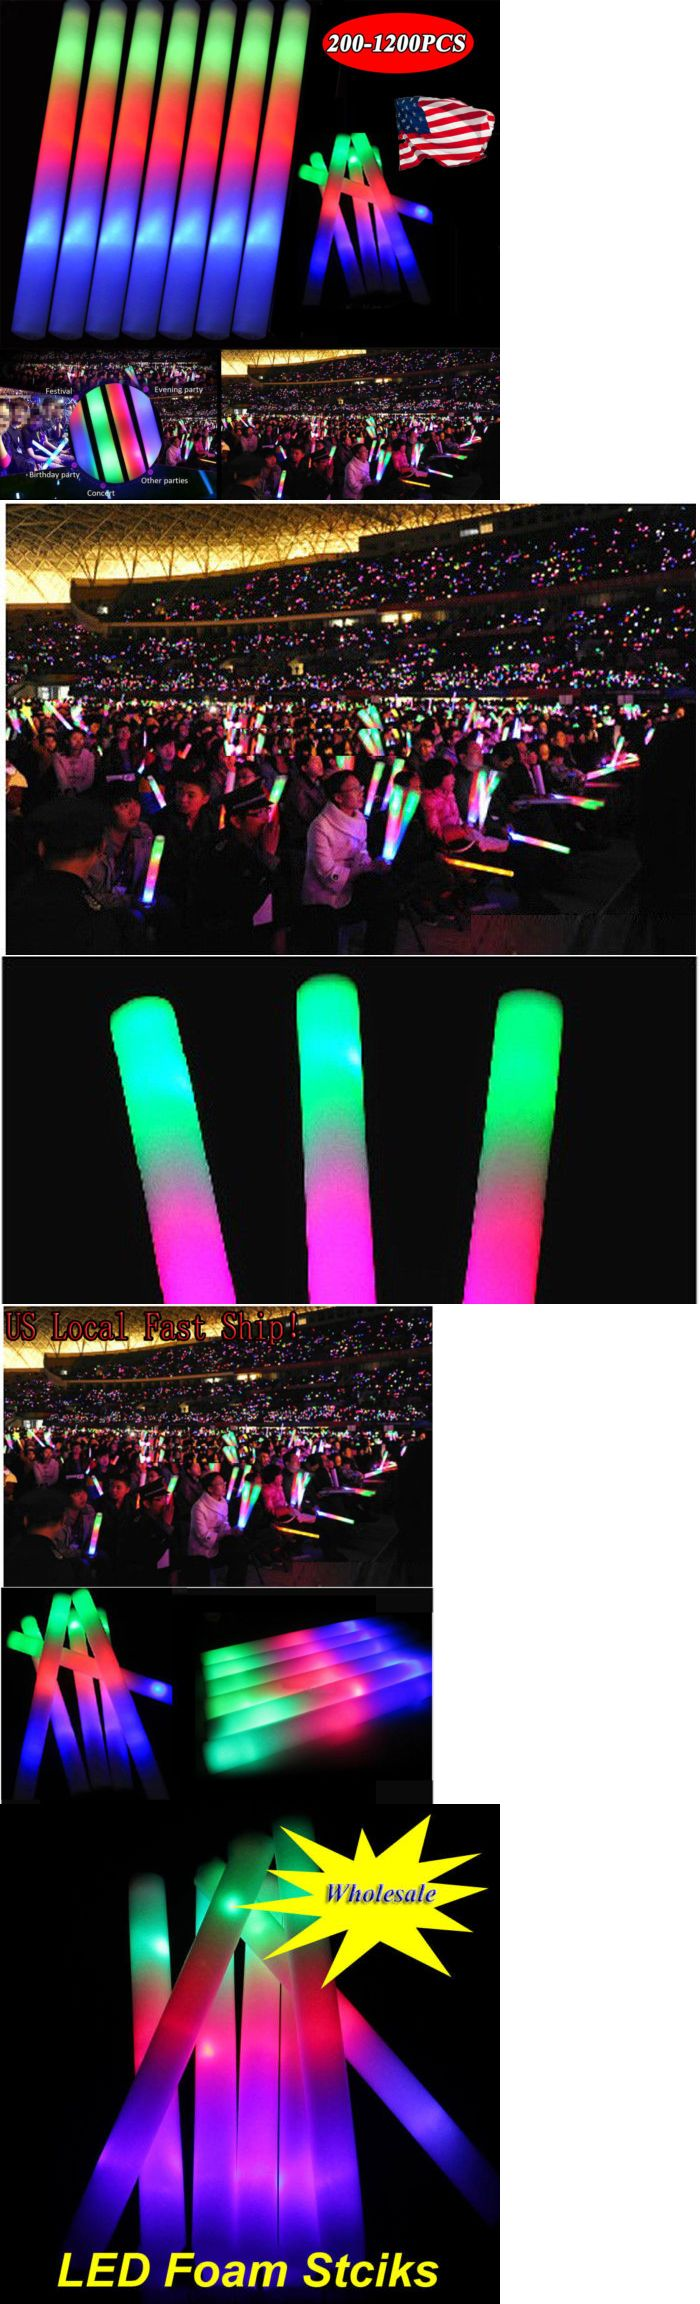 Glow Sticks 51019: 200-1200Pcs Light-Up Foam Sticks Led Wands Rally Batons Concert Party Suppliers -> BUY IT NOW ONLY: $139.69 on eBay!